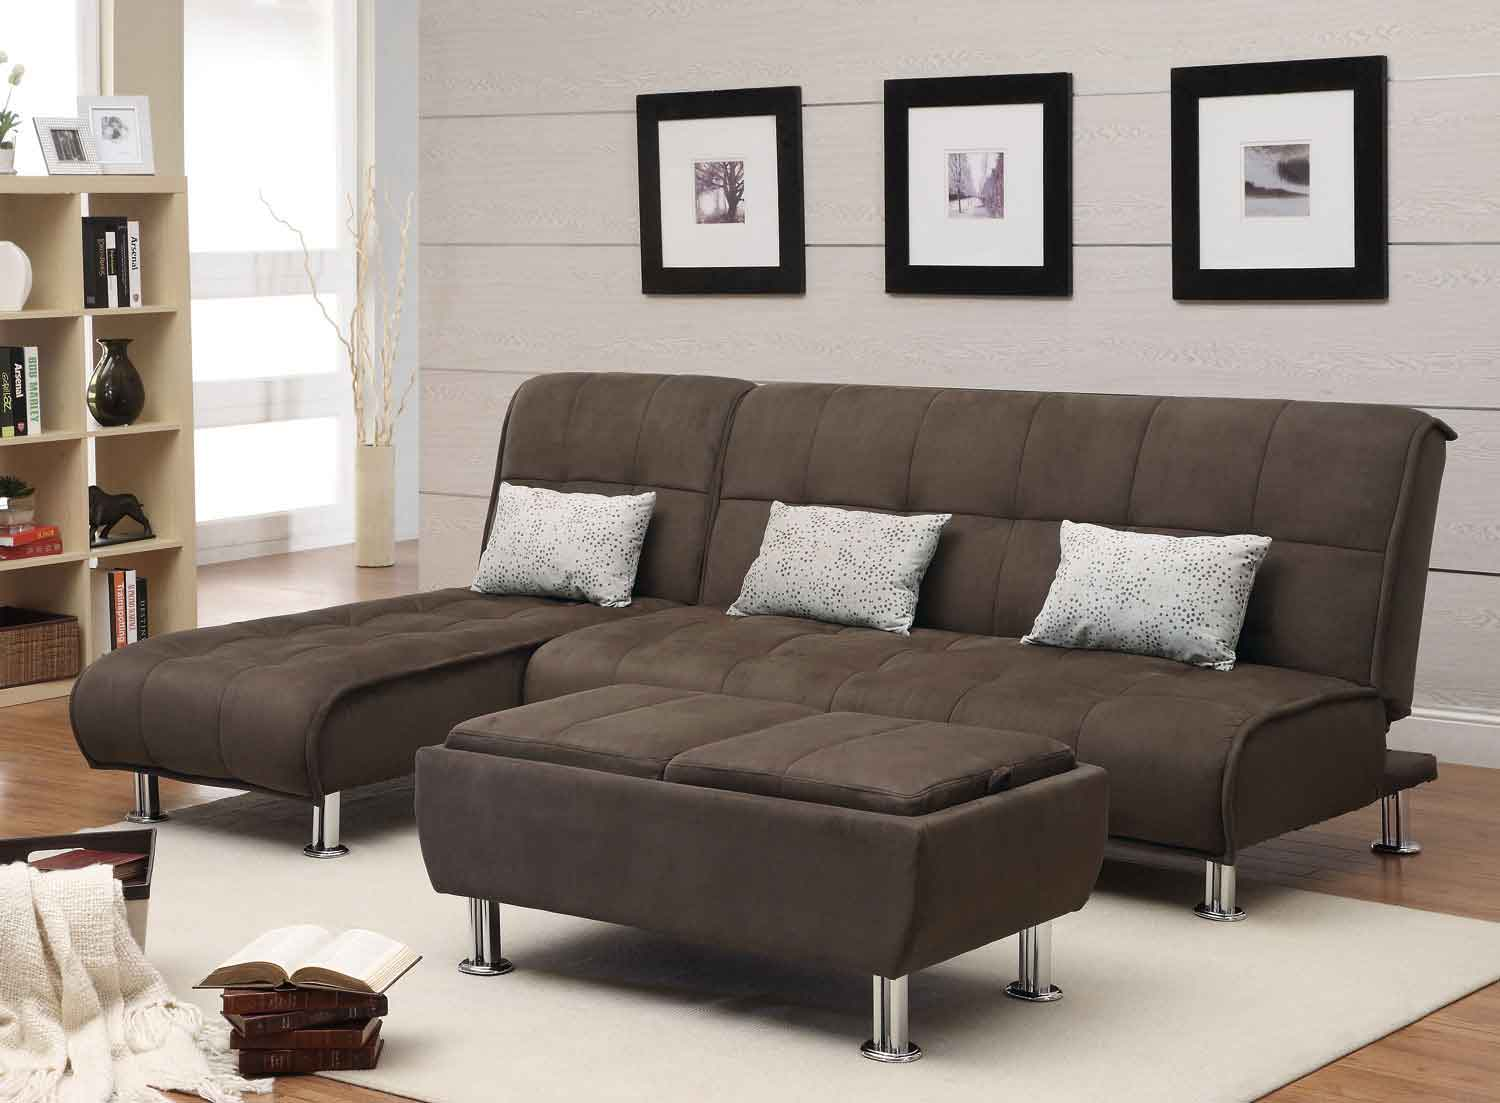 Coaster 300276 Sofa Bed Set - Brown